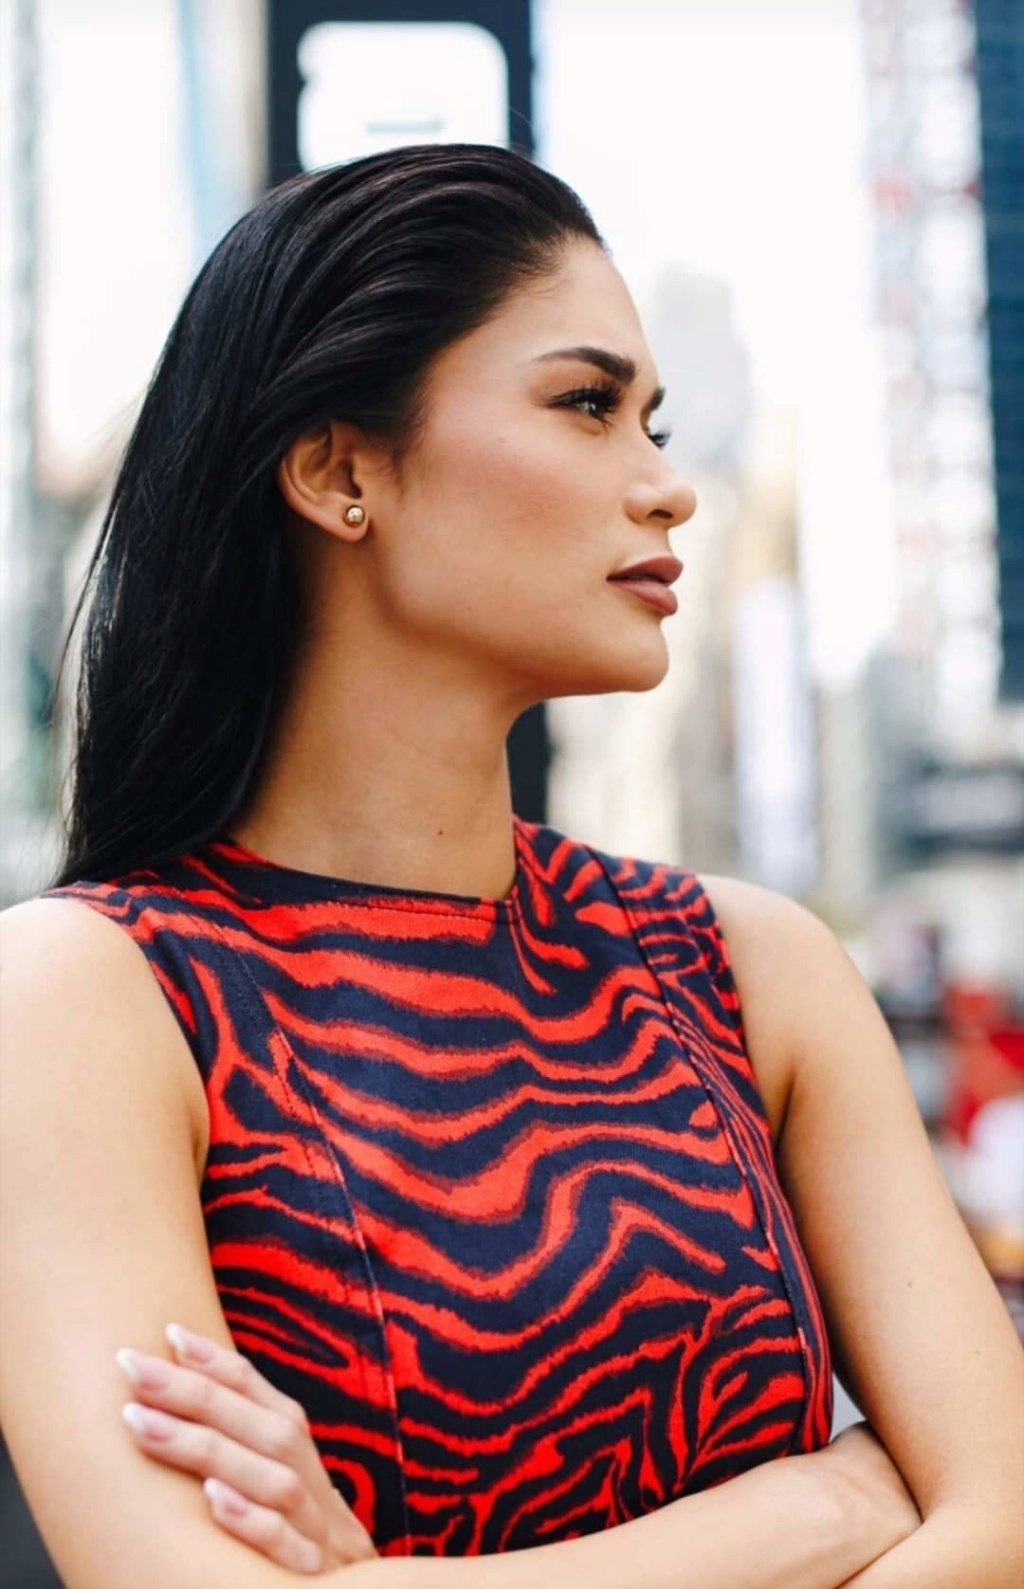 ♔ The Official Thread of MISS UNIVERSE® 2015 Pia Alonzo Wurtzbach of Philippines ♔  - Page 38 Fb_10459